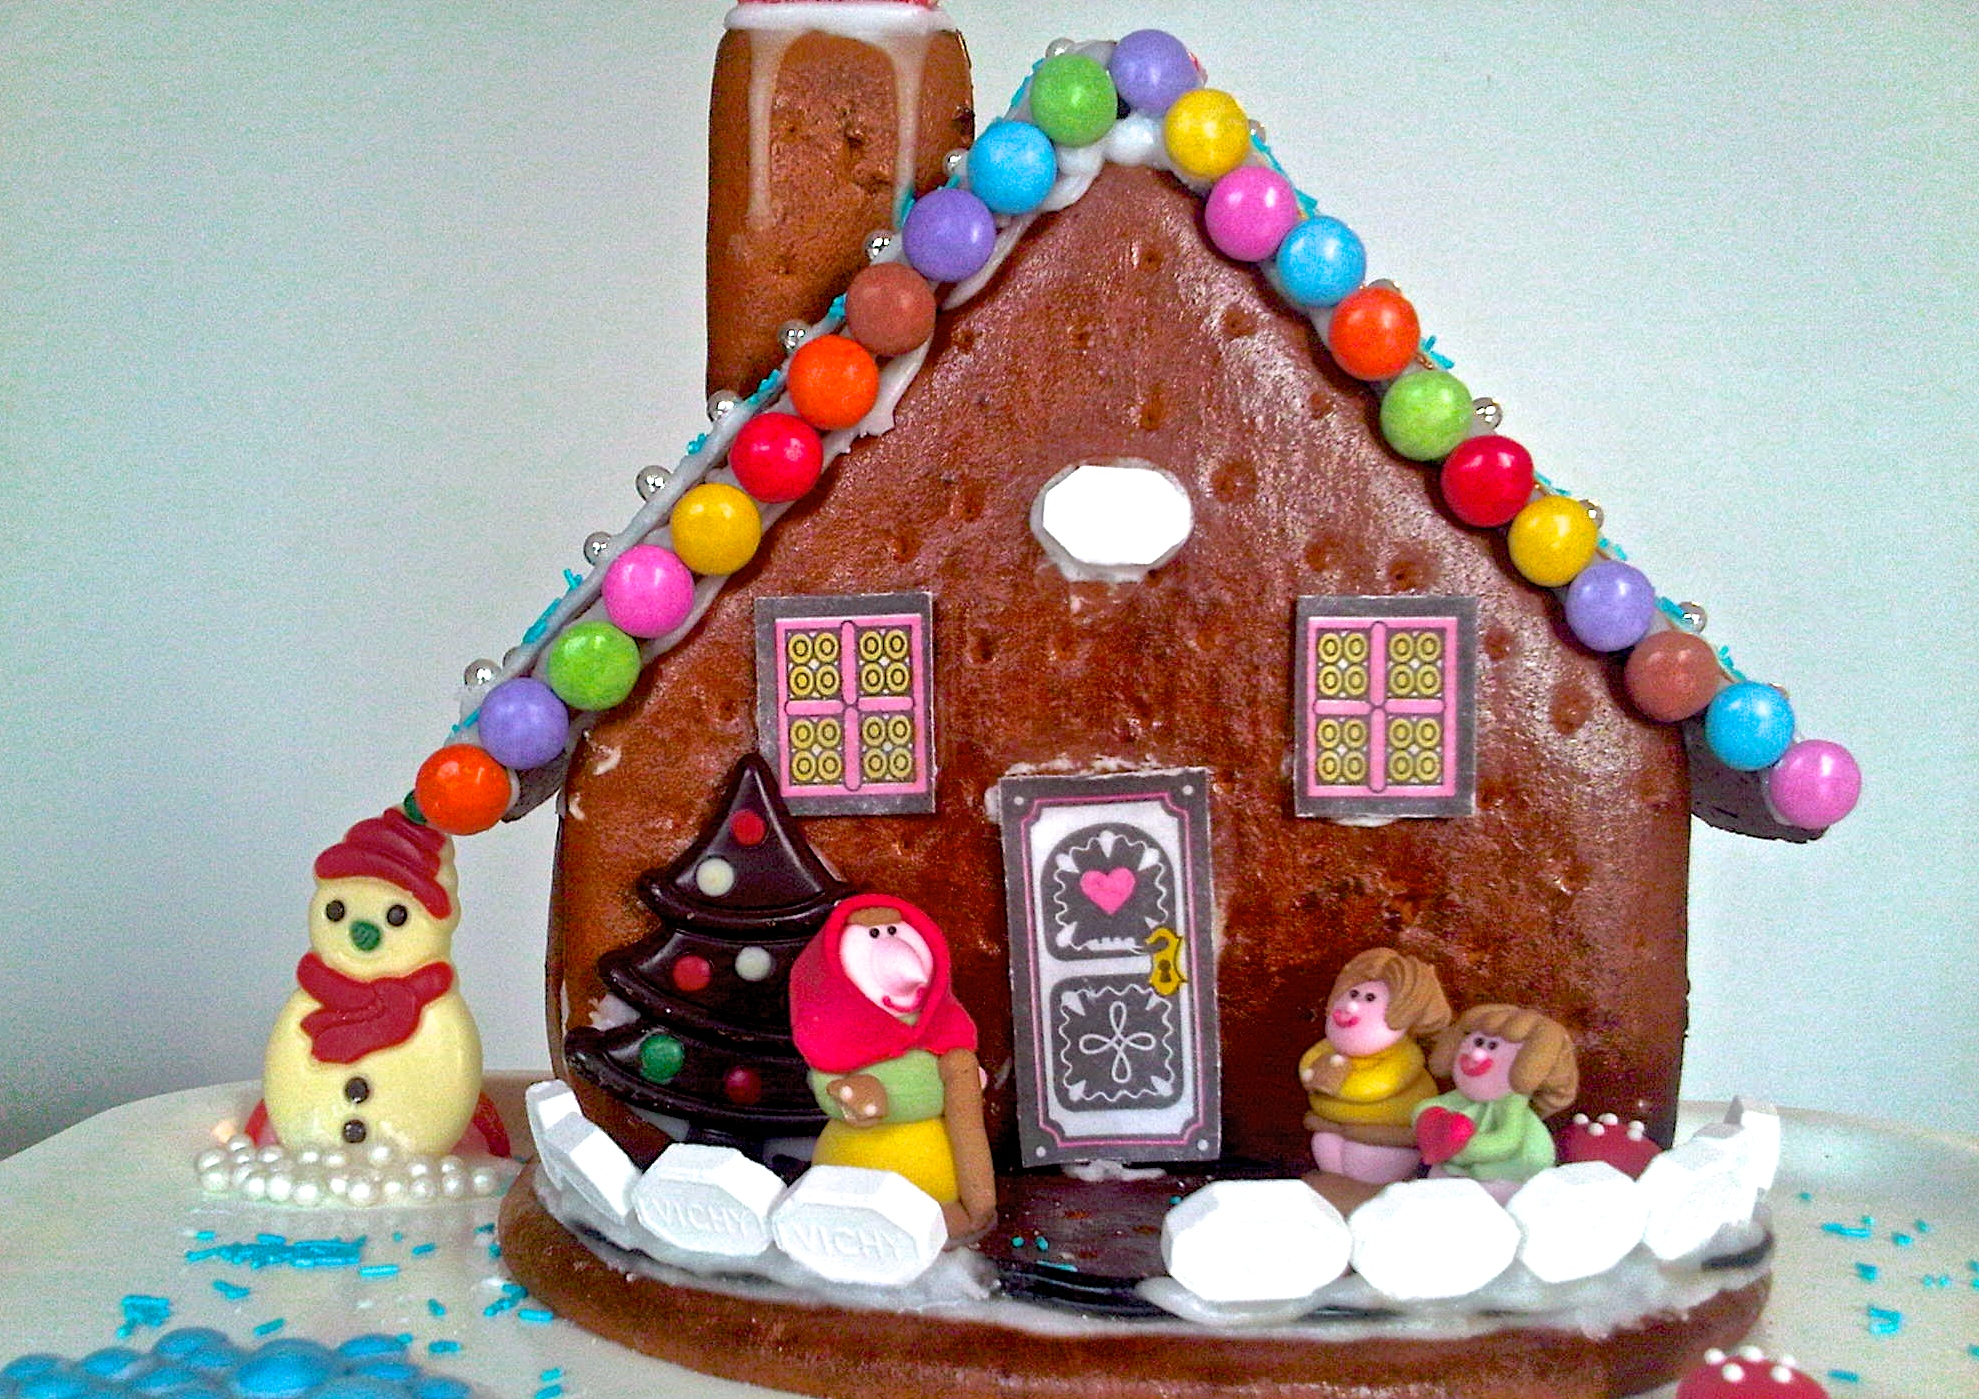 gingerbread house - Sweet Cabane